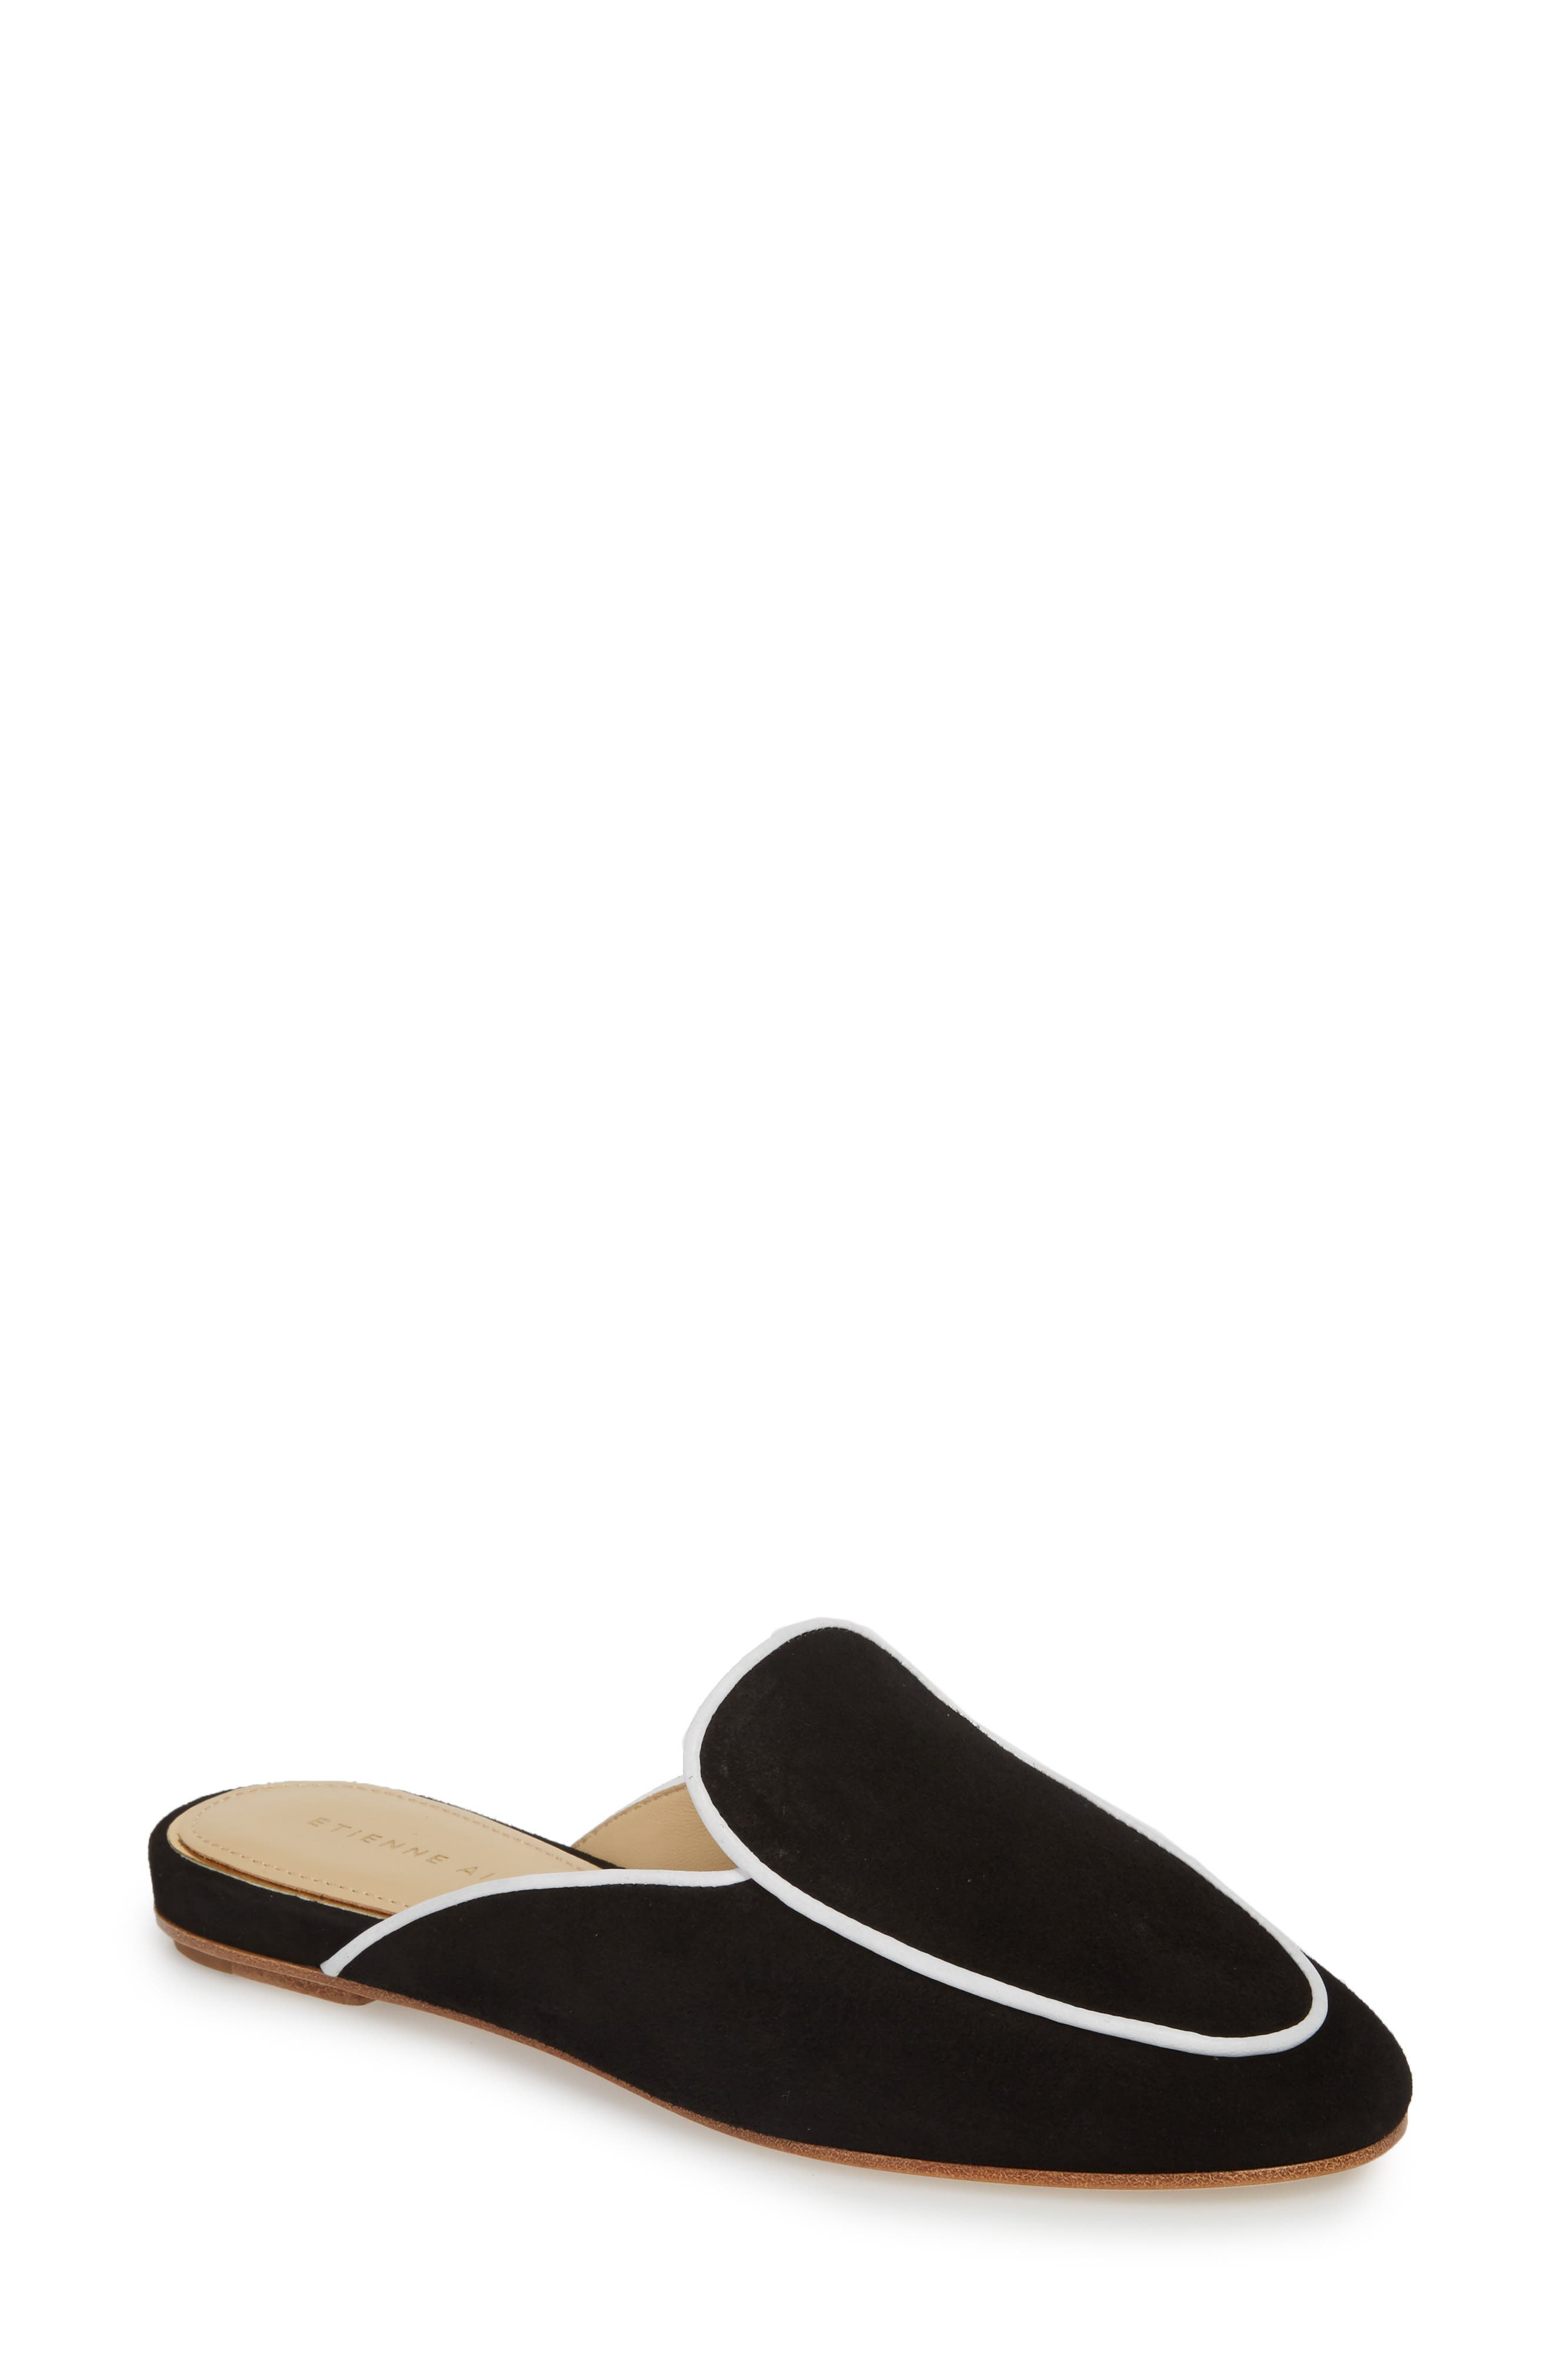 Capri Apron Toe Loafer Mule,                         Main,                         color, BLACK/ WHITE SUEDE